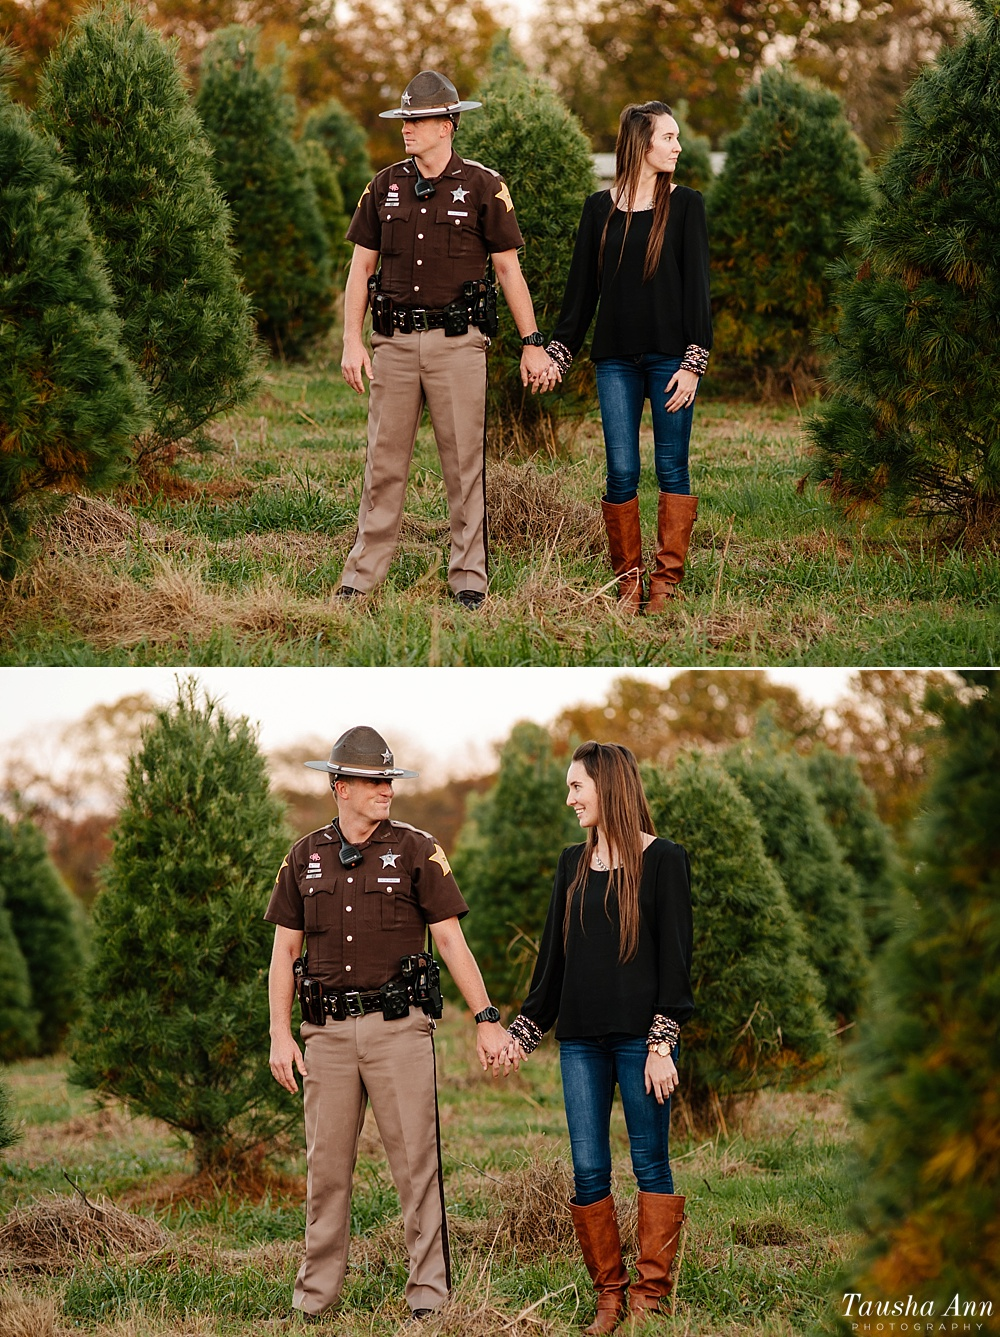 Surprise Proposal at Country Cove Christmas Tree Farm. Police officer surprise proposal at Sunset. Engagement Portrait Standing in between Christmas Trees.